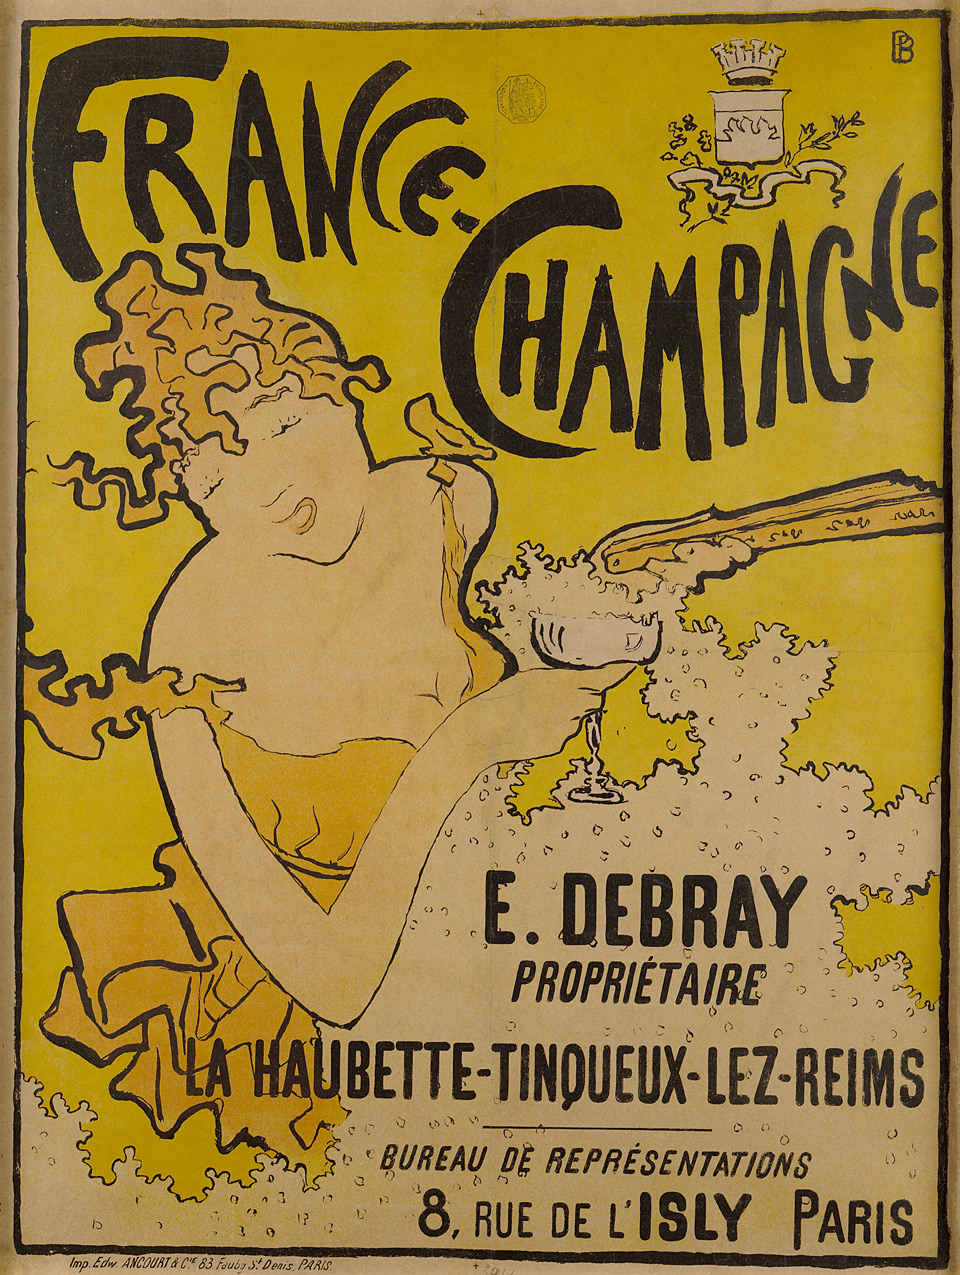 Pierre Bonnard: France-Champagne, 1891